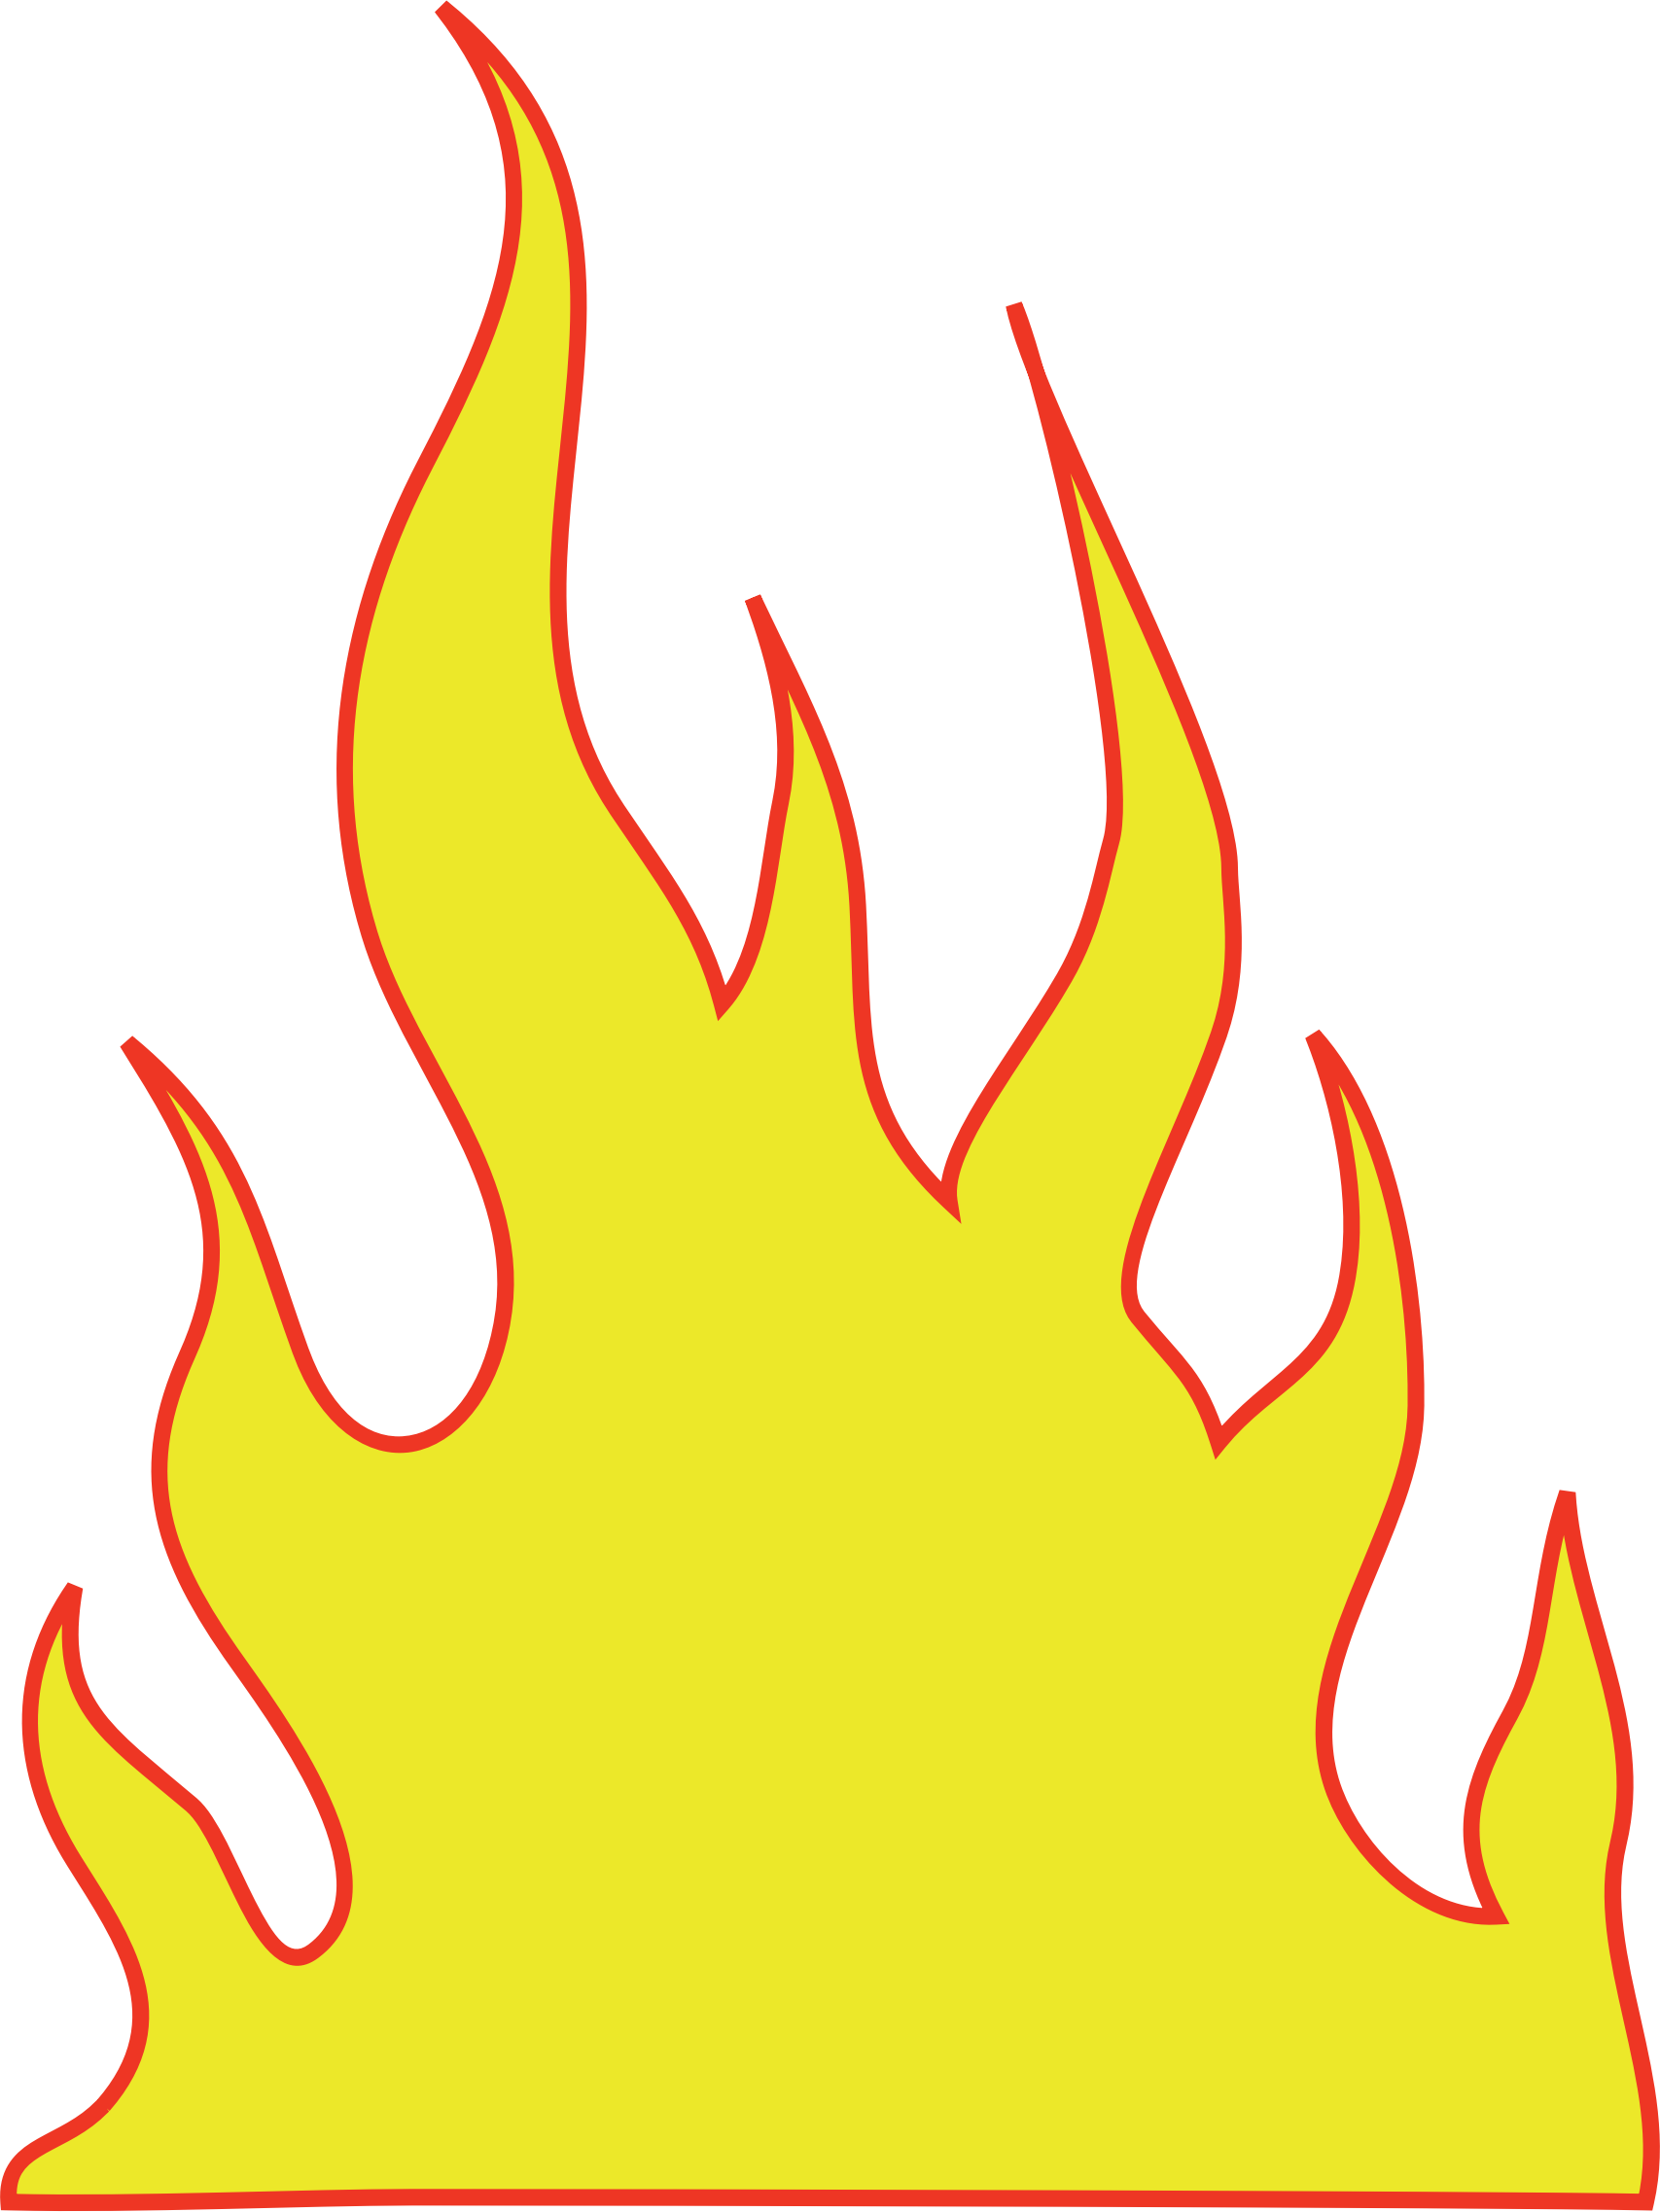 Yellow flames clipart png clipart freeuse download Flame clipart yellow, Flame yellow Transparent FREE for ... clipart freeuse download